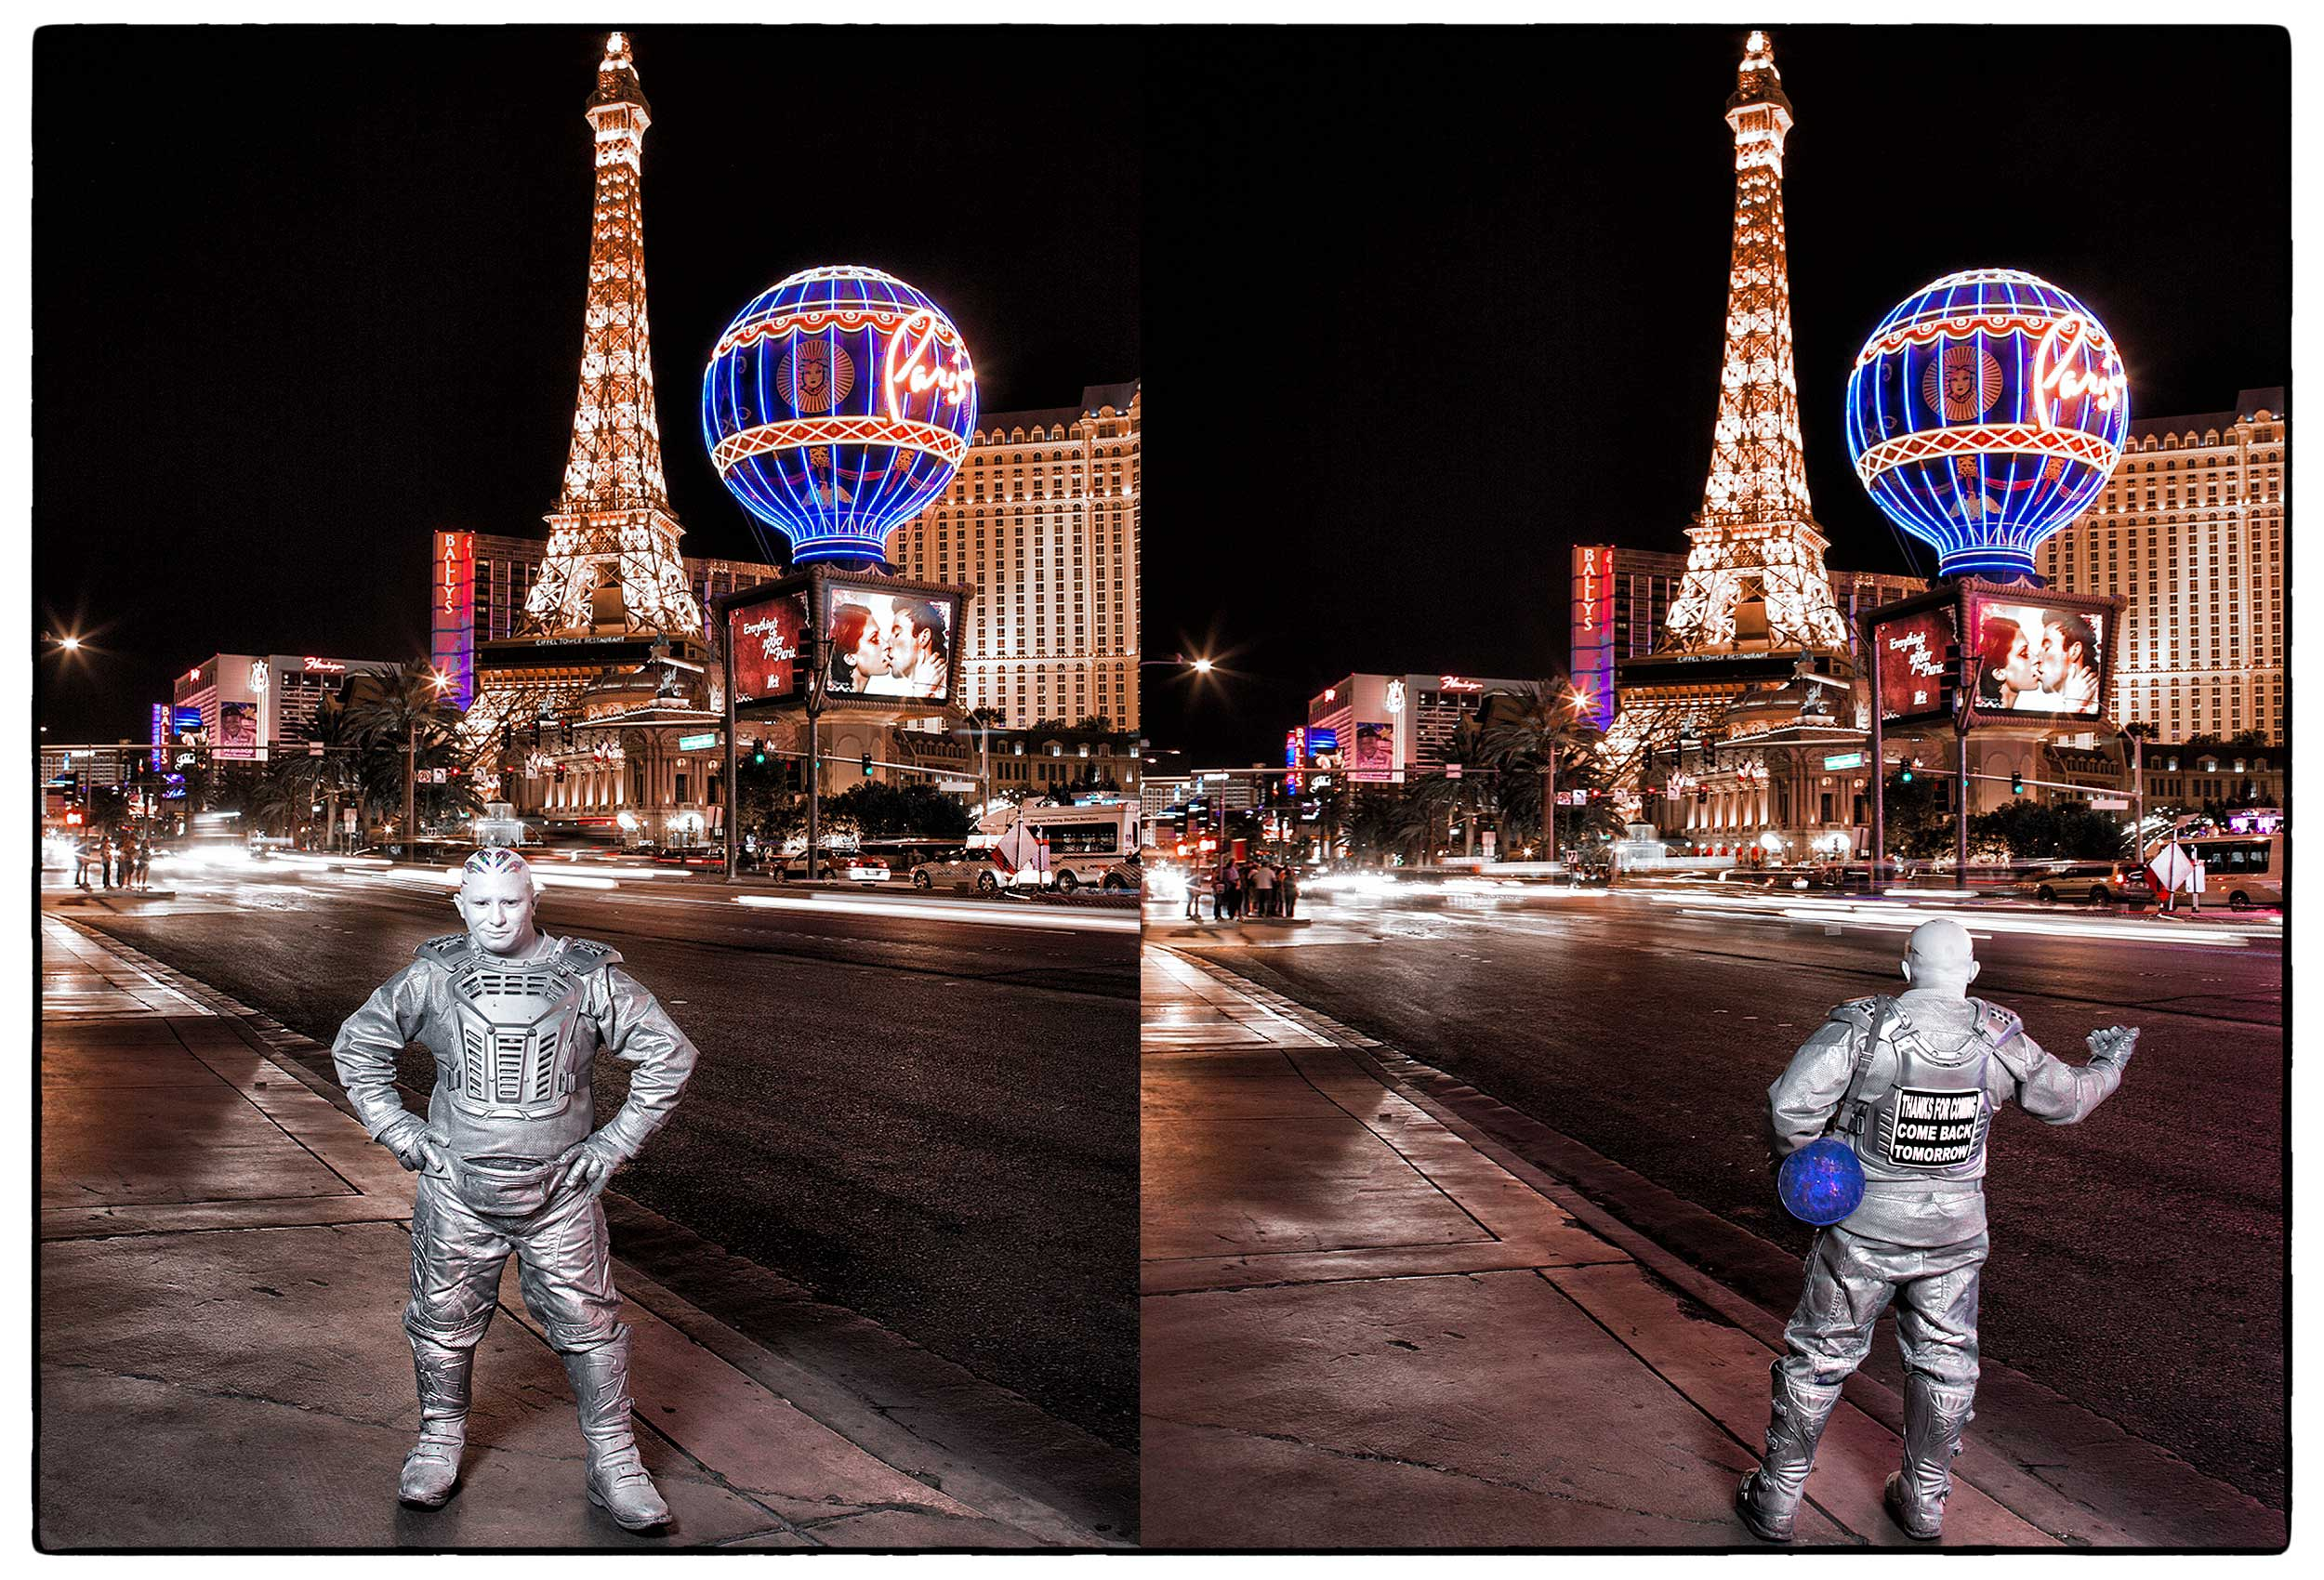 a-street-performer-dressed-as-a-space-man-poses-on-the-main-strip-in-las-vegas-nevada